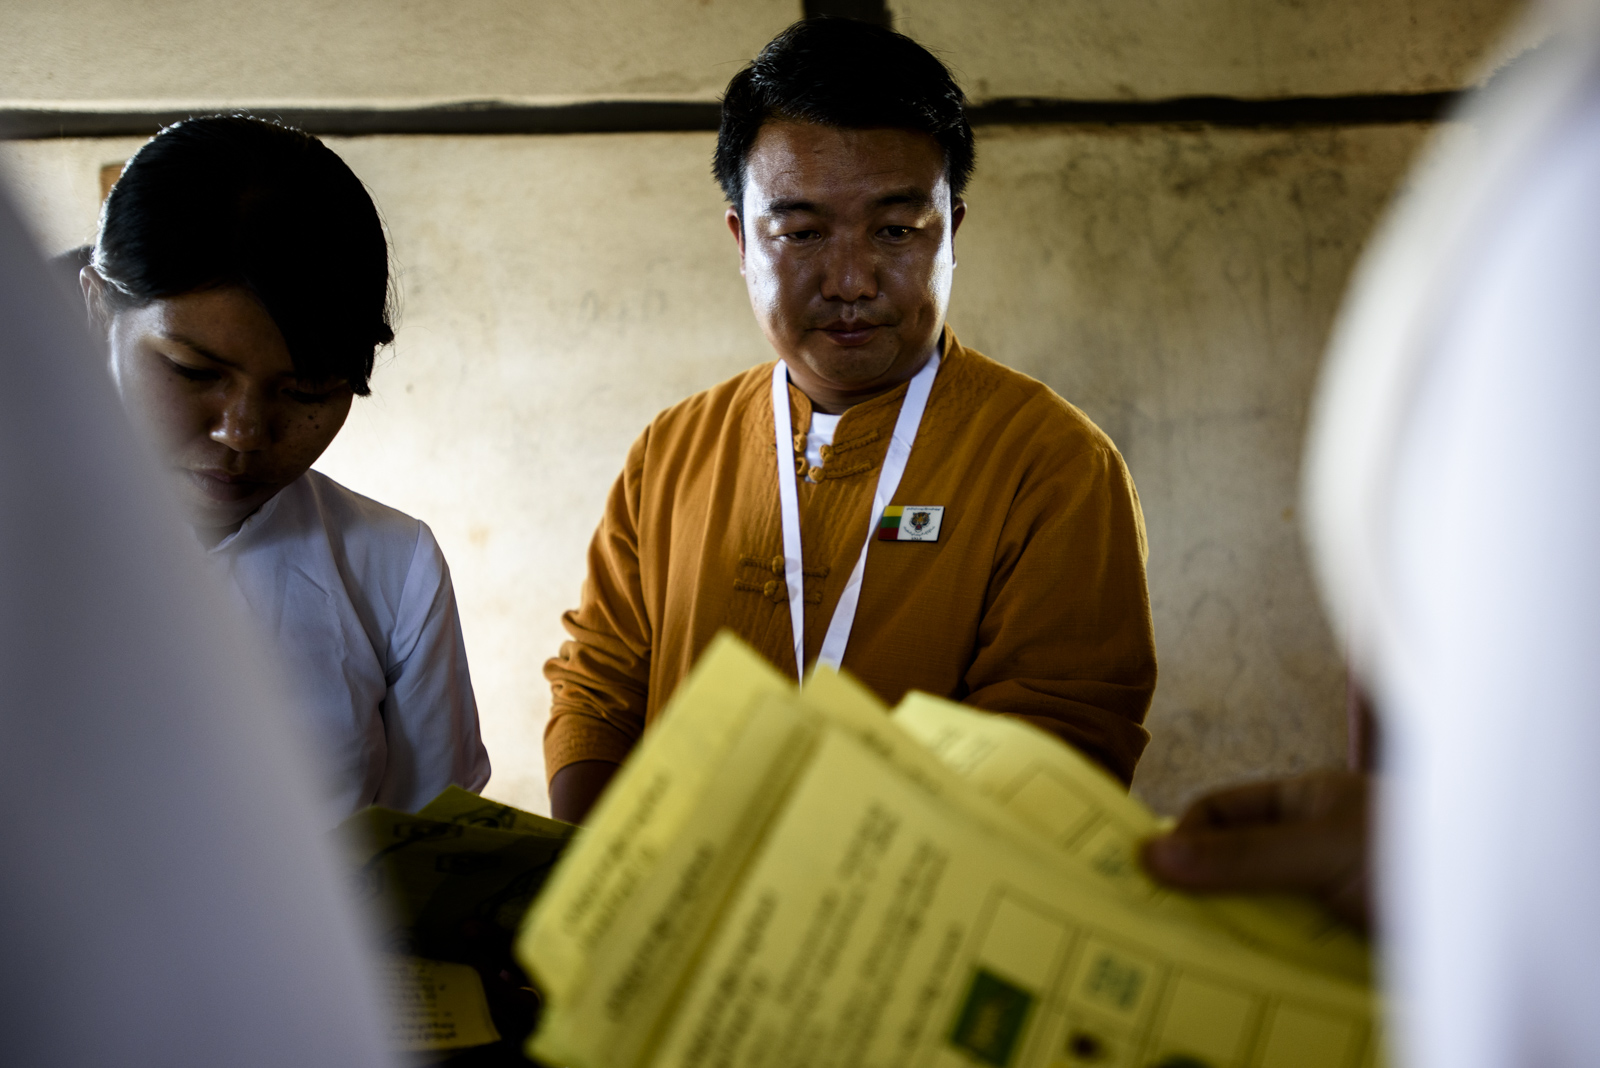 One Leng watches election officials counting ballots for the seat he is contesting at a rural polling station in Kan Long, Myanmar. He received 411 votes while Aung San Suu Kyi's NLD had only three.